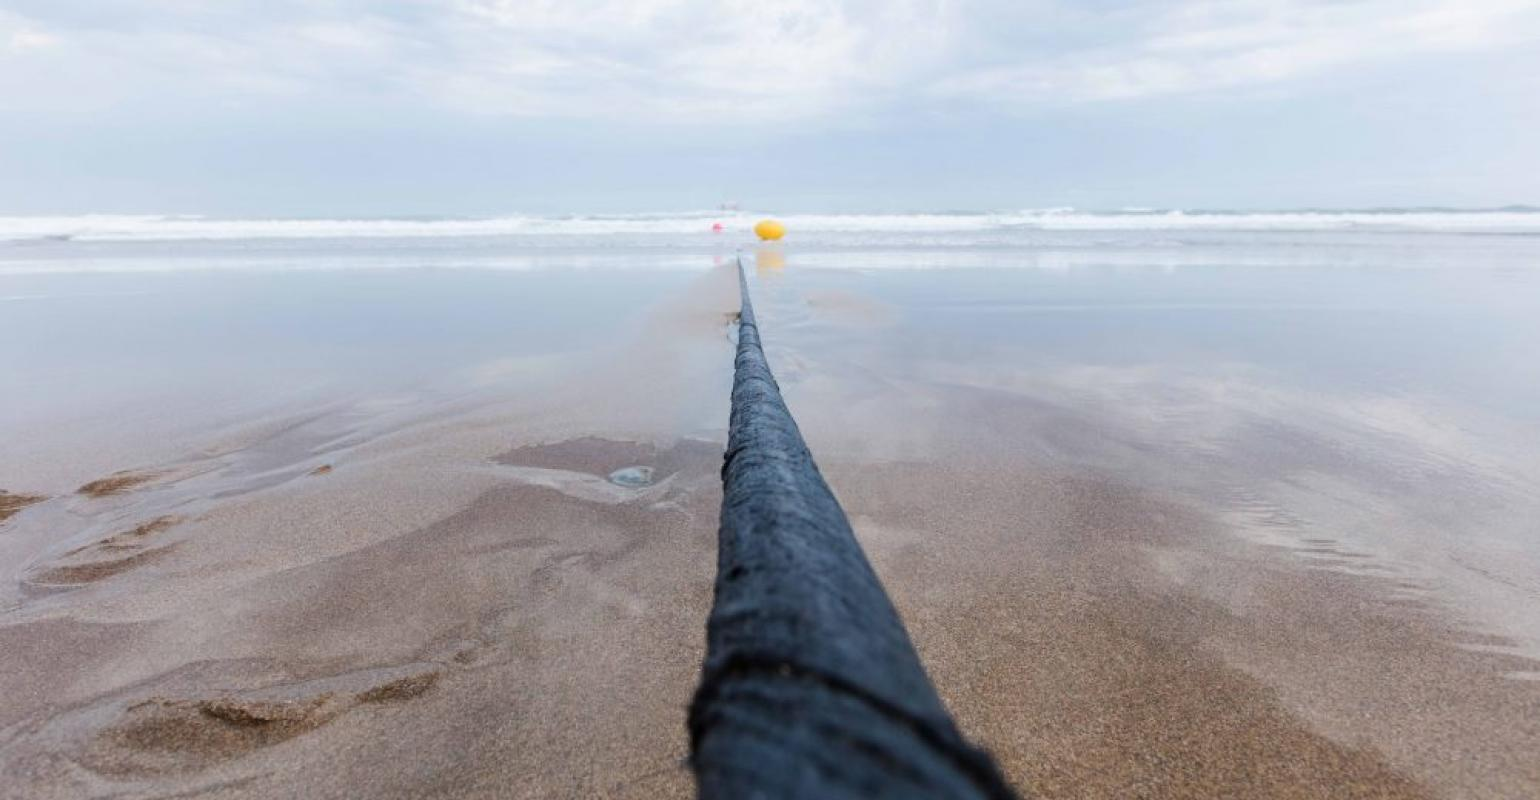 Facebook and Microsoft's High-Capacity Cable Marea Complete